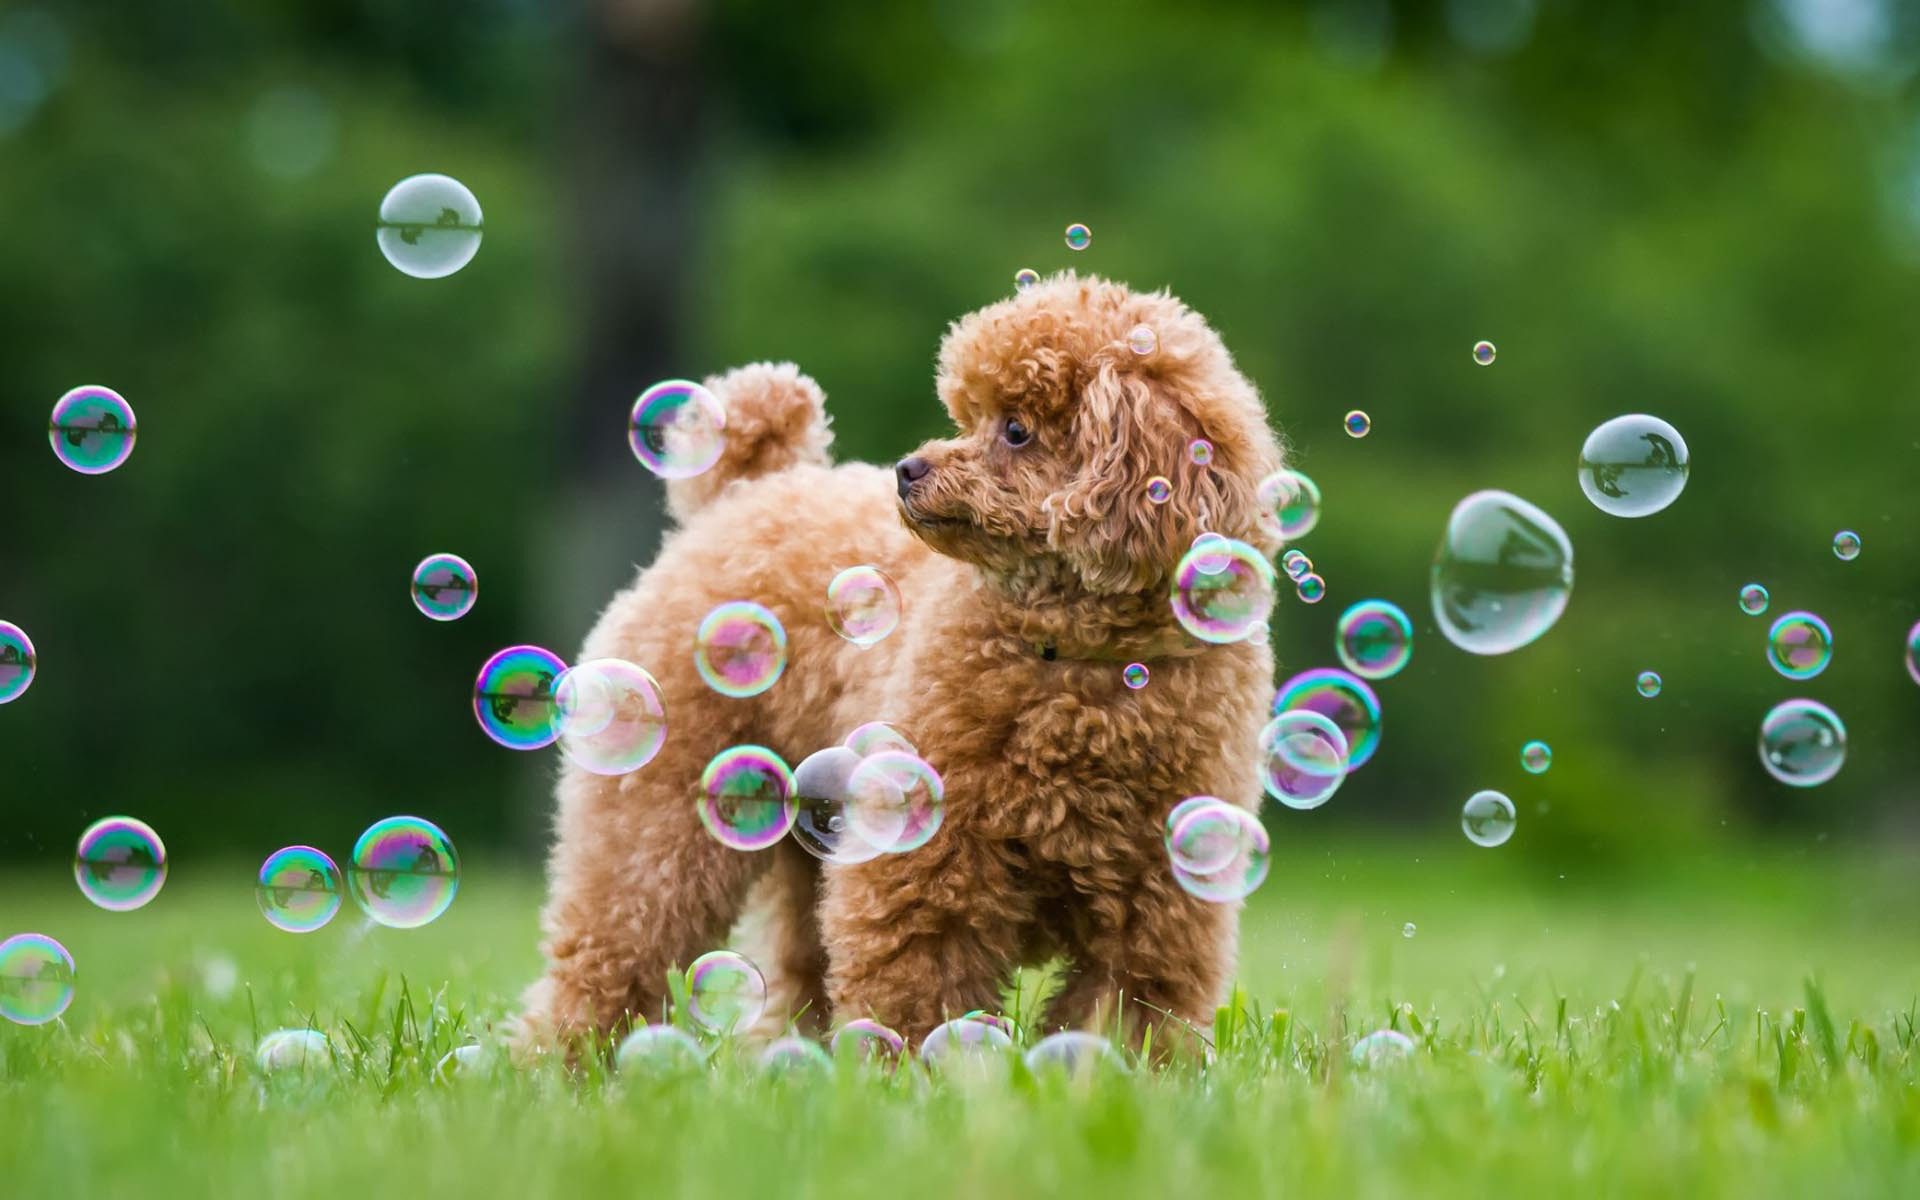 14 Hd Poodle Dog Wallpapers